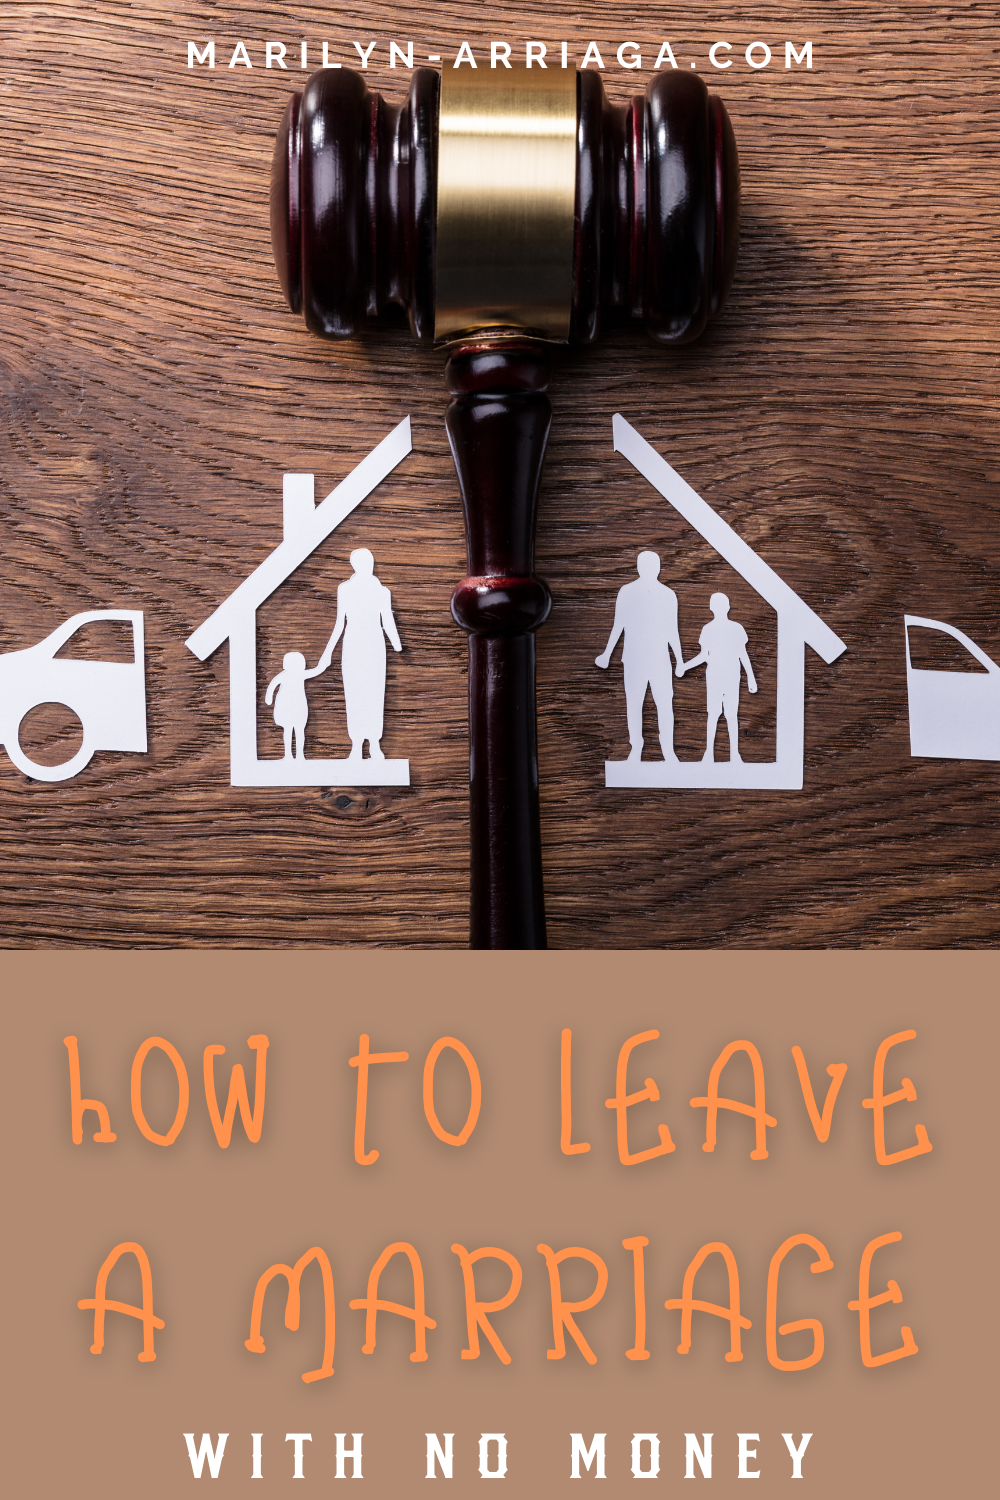 how to leave the marriage with no money